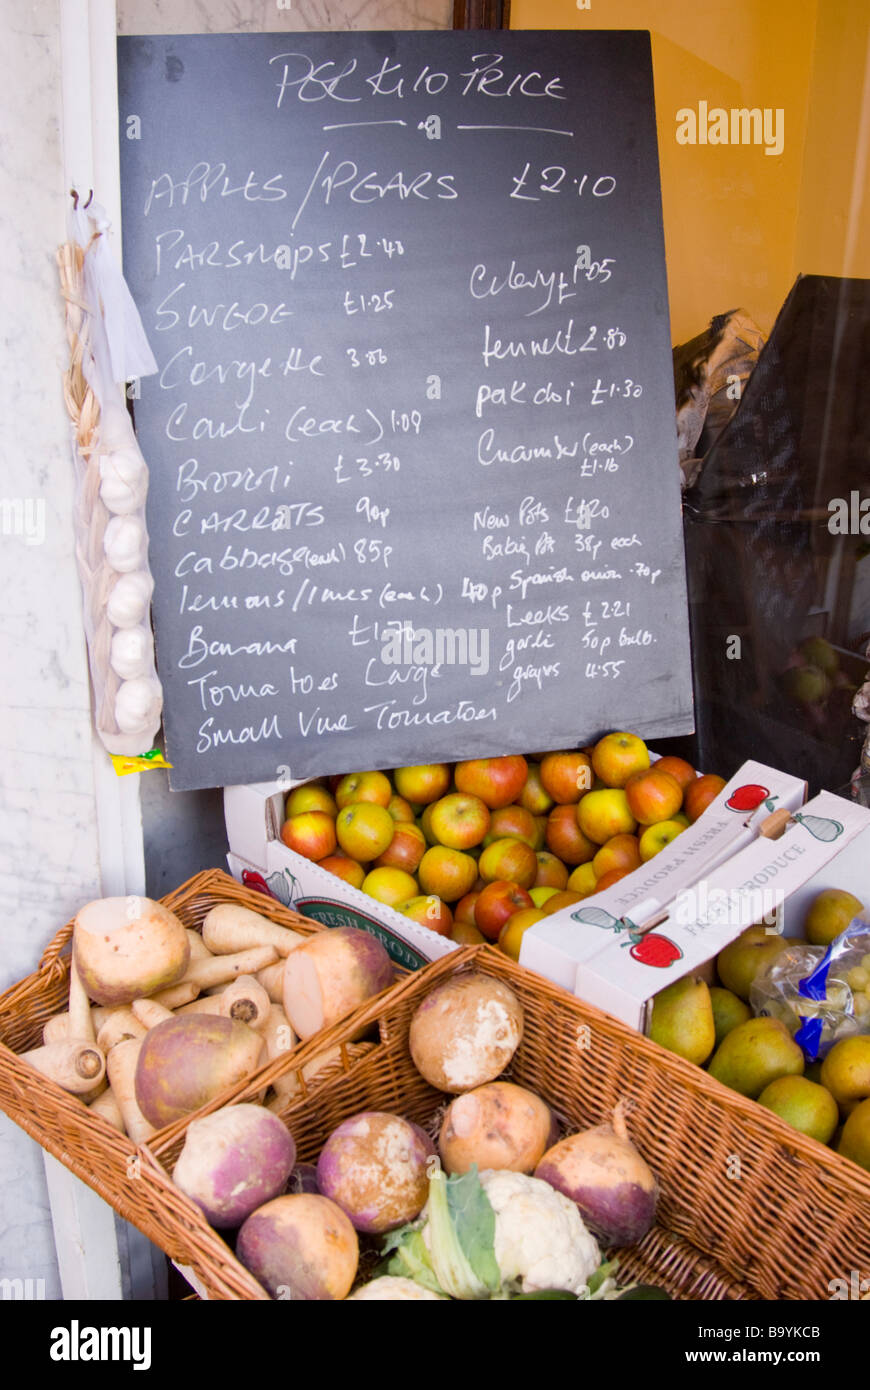 Fruit And Vegetables For Sale Outside A Uk Shop Store With Prices On A  Blackboard